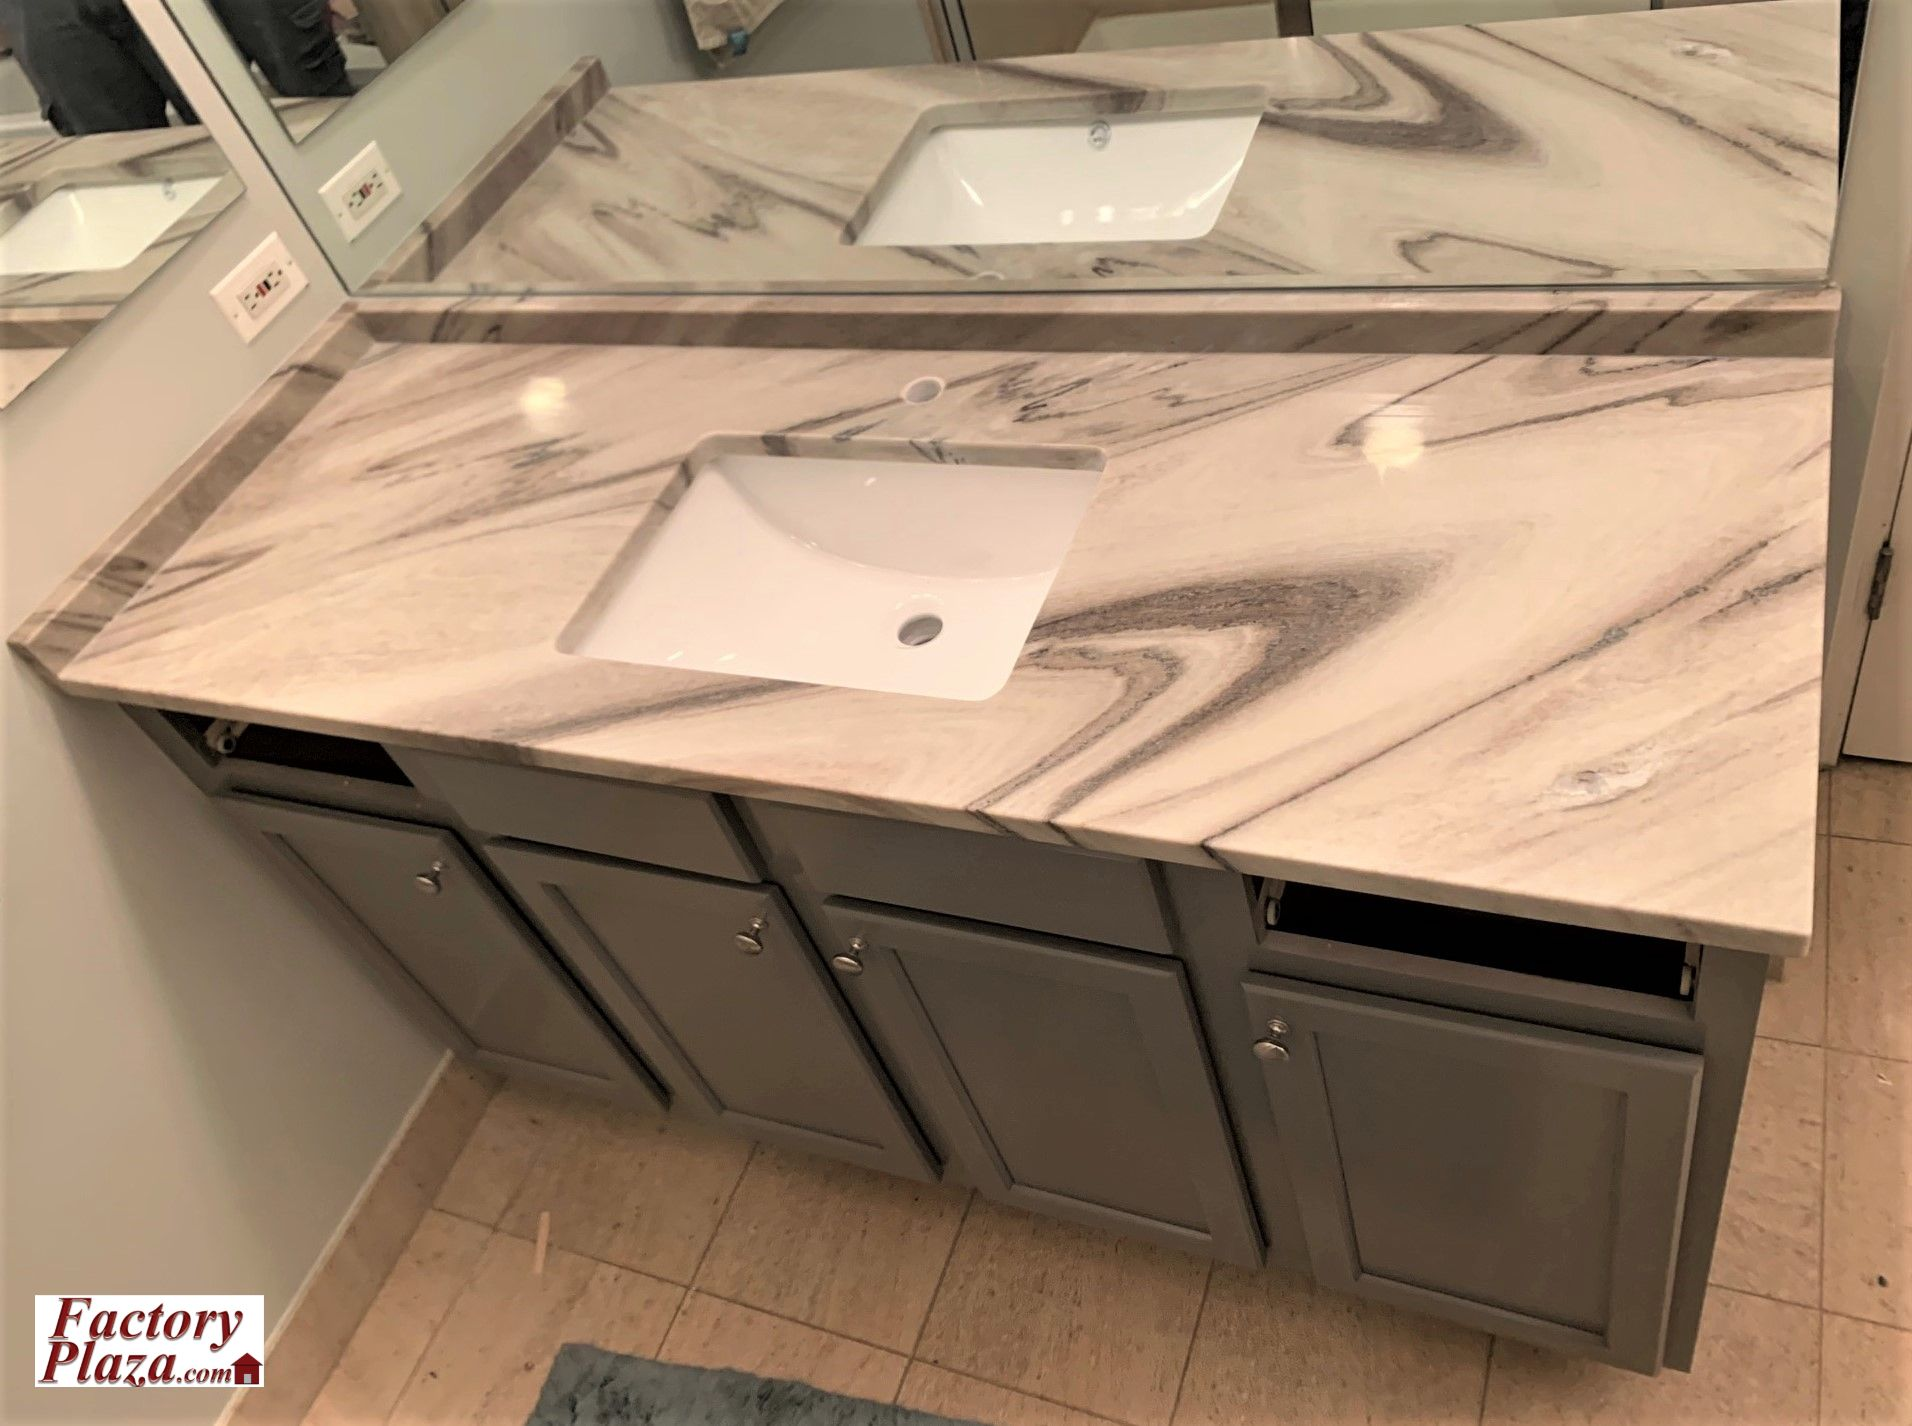 Factory Plaza measure, fabricate and install marble vanity